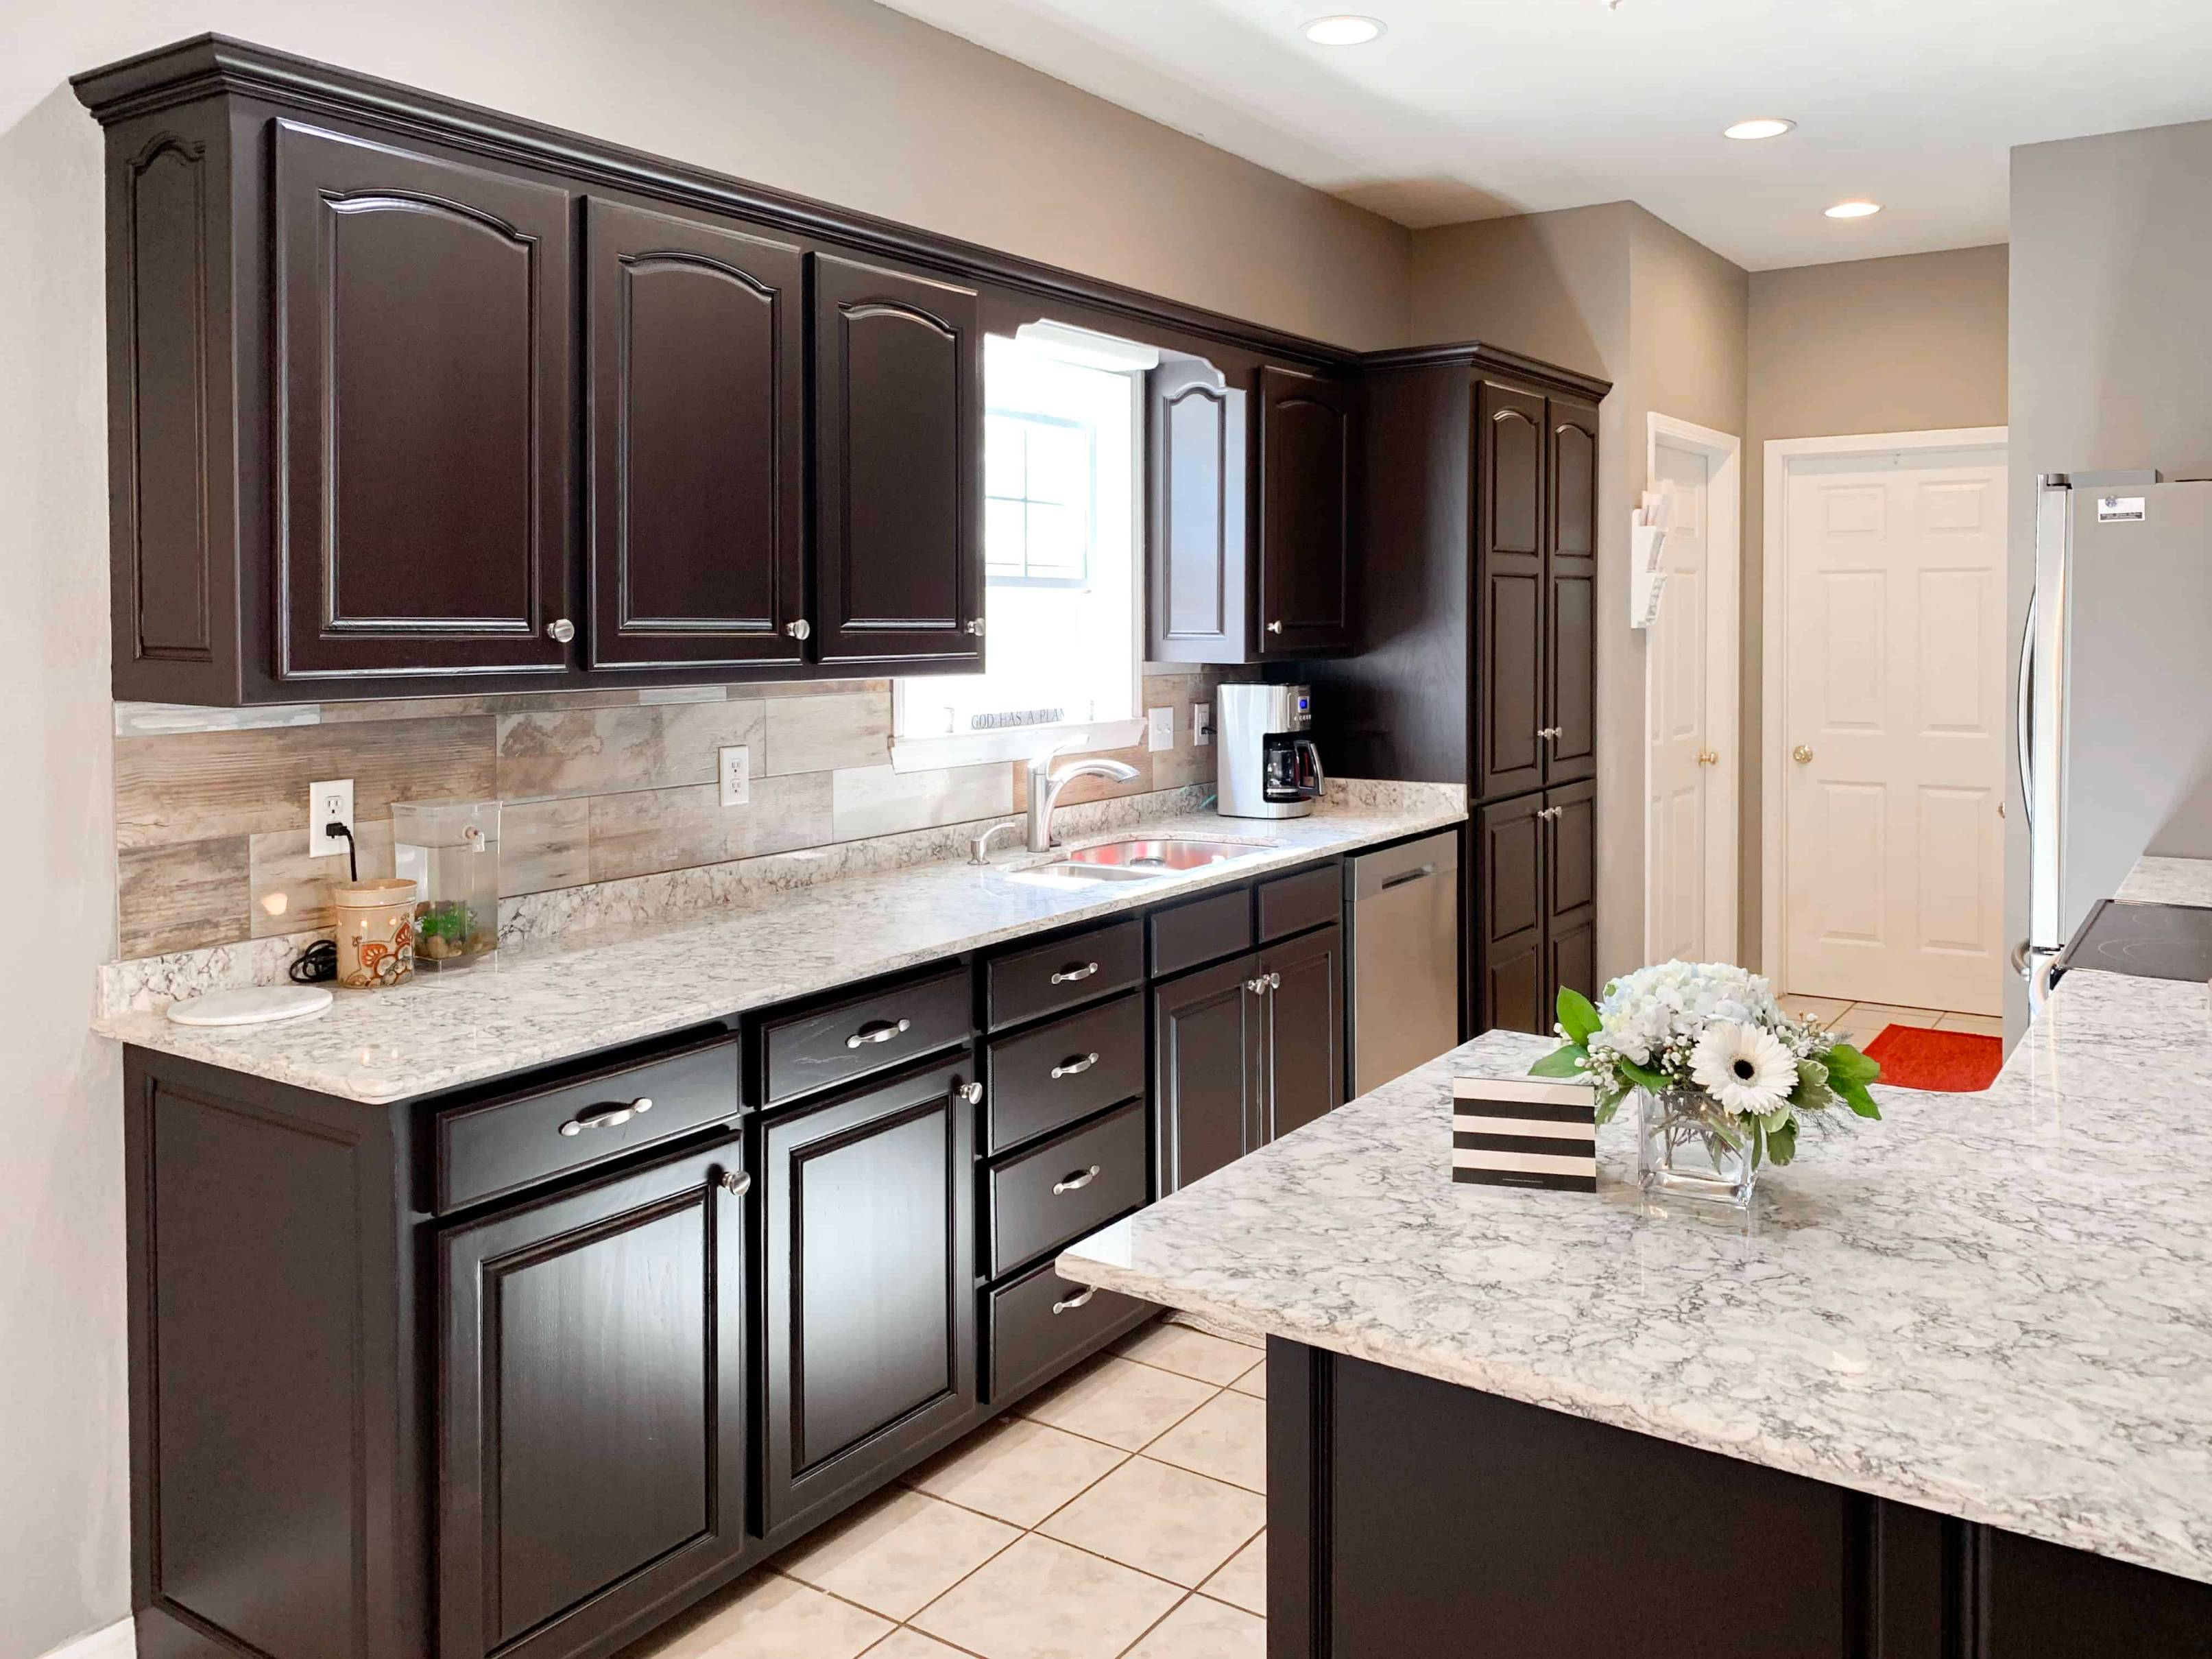 How to make brown kitchen cabinets look modern ☆ What color goes ...